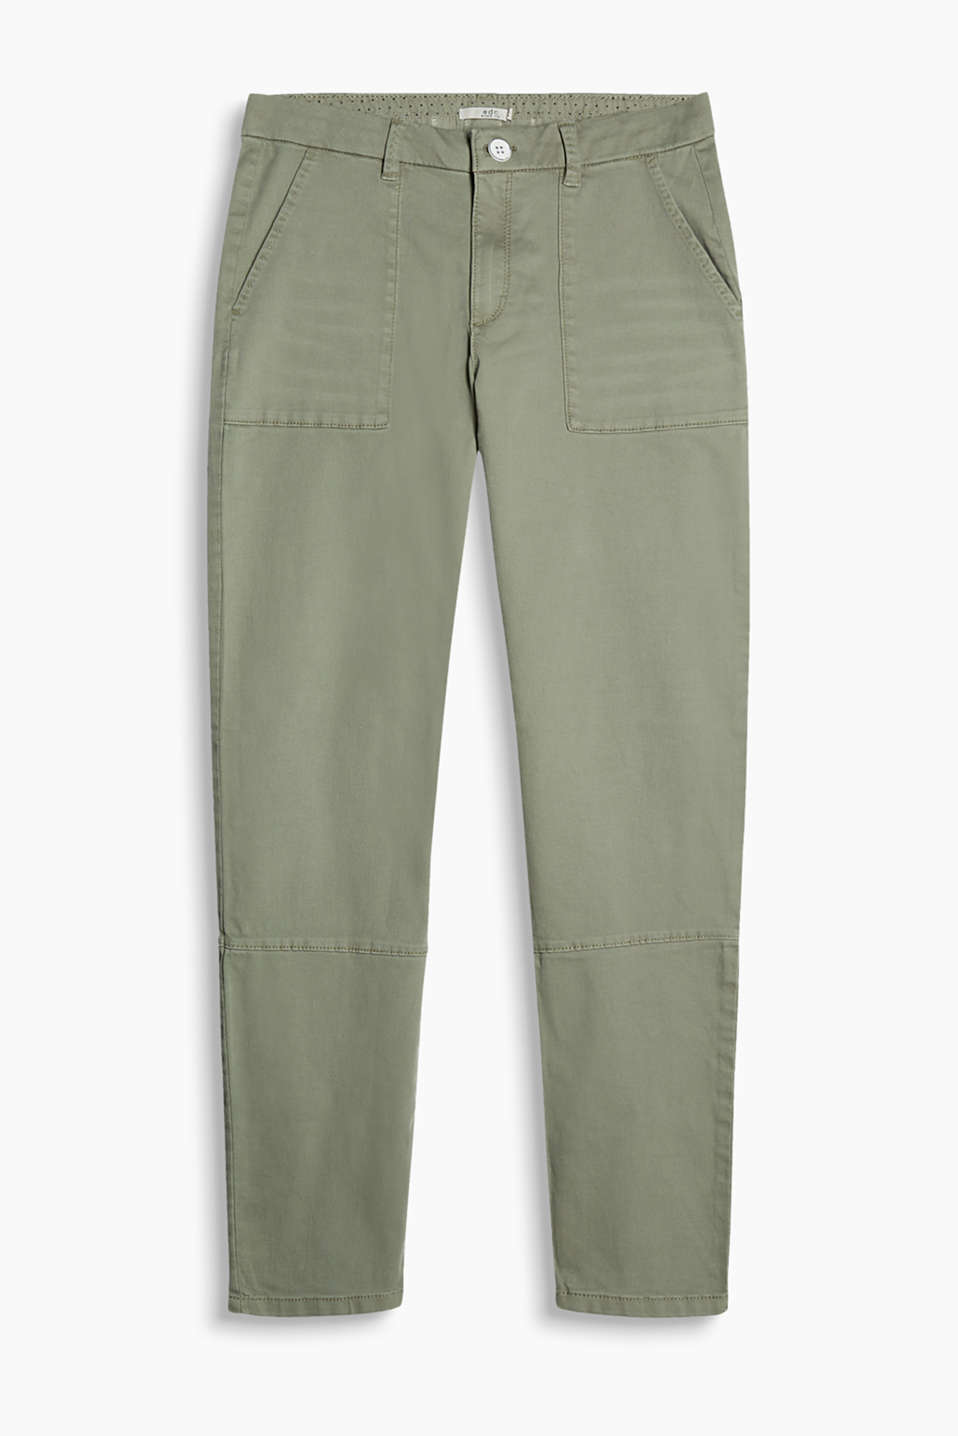 Chinos in a garment-washed cotton blend with worker-style patch pockets